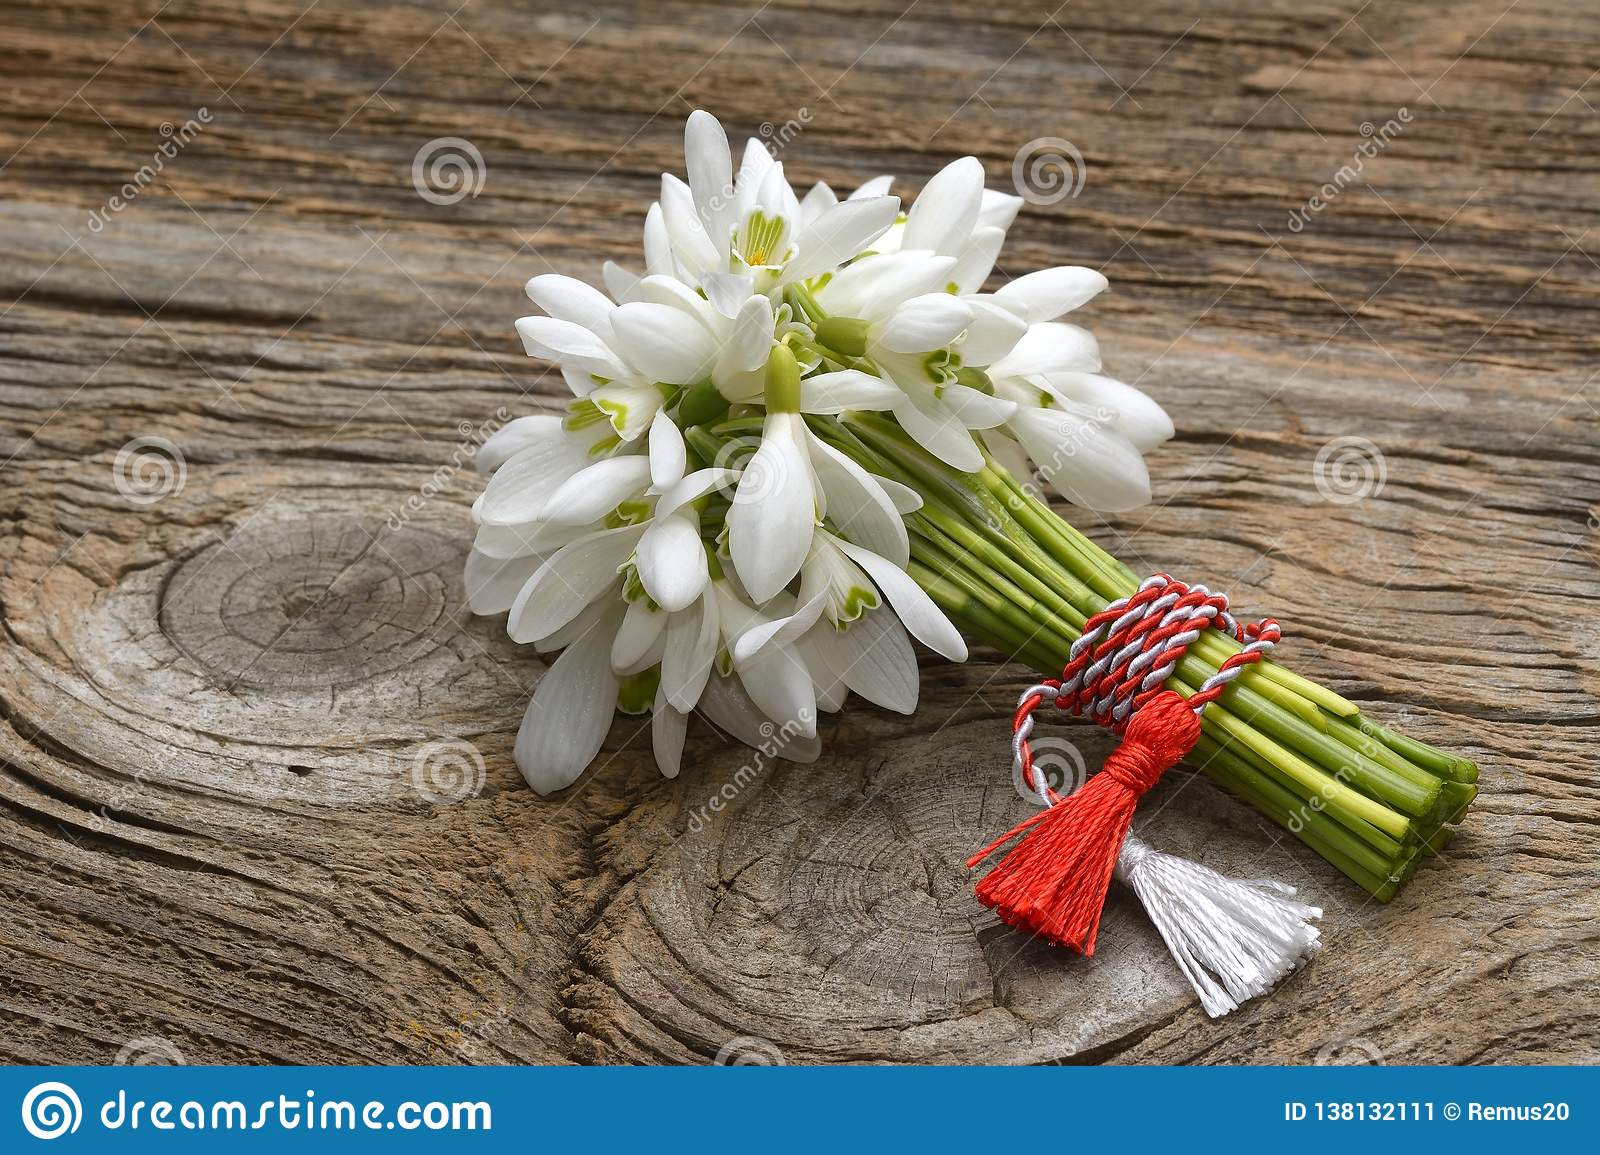 Snowdrops, 1st of March tradition white and red cord martisor isolated on wooden background